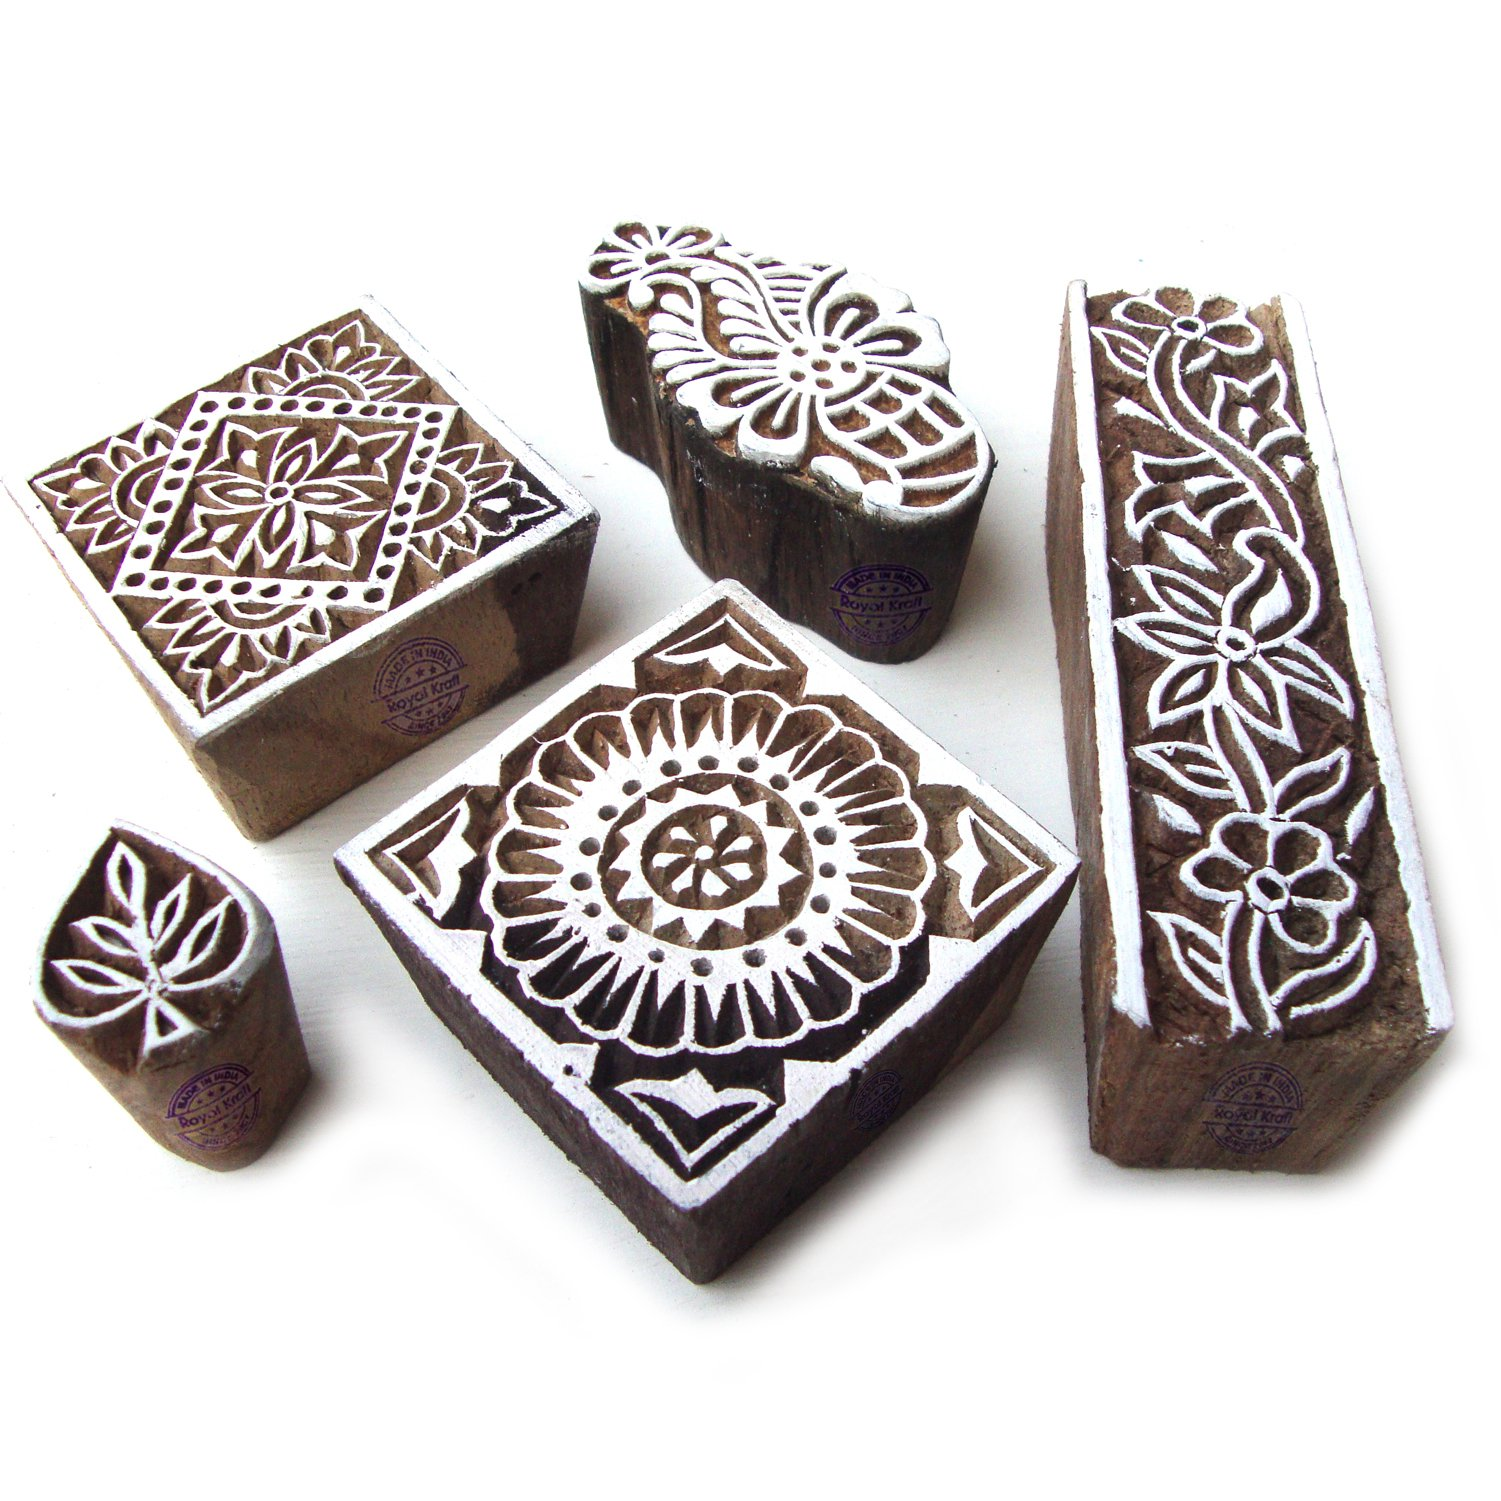 Hand Made Square and Floral Motif Wooden Stamps for Printing (Set of 5)